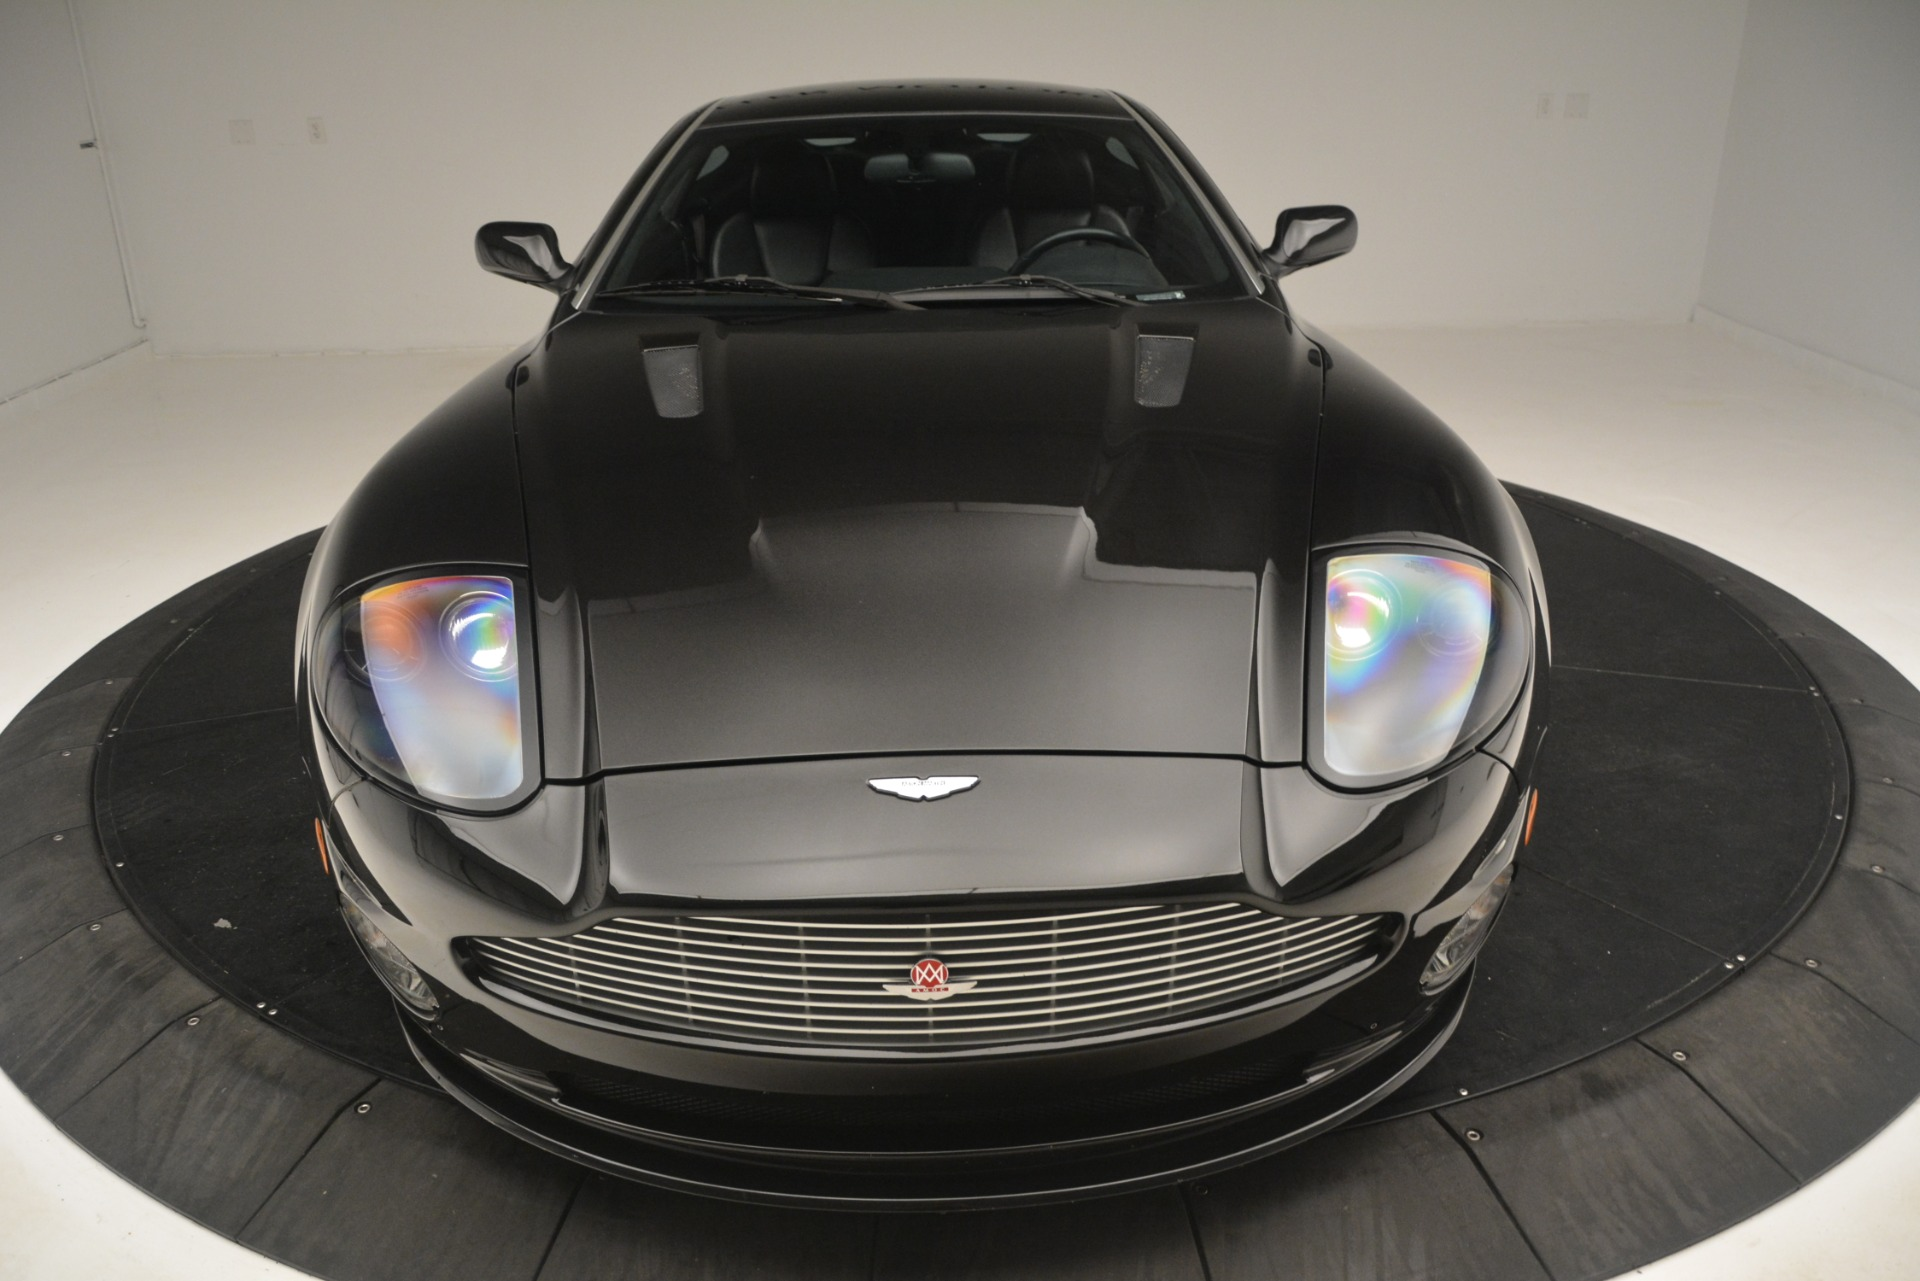 Used 2004 Aston Martin V12 Vanquish  For Sale In Greenwich, CT 3160_p10